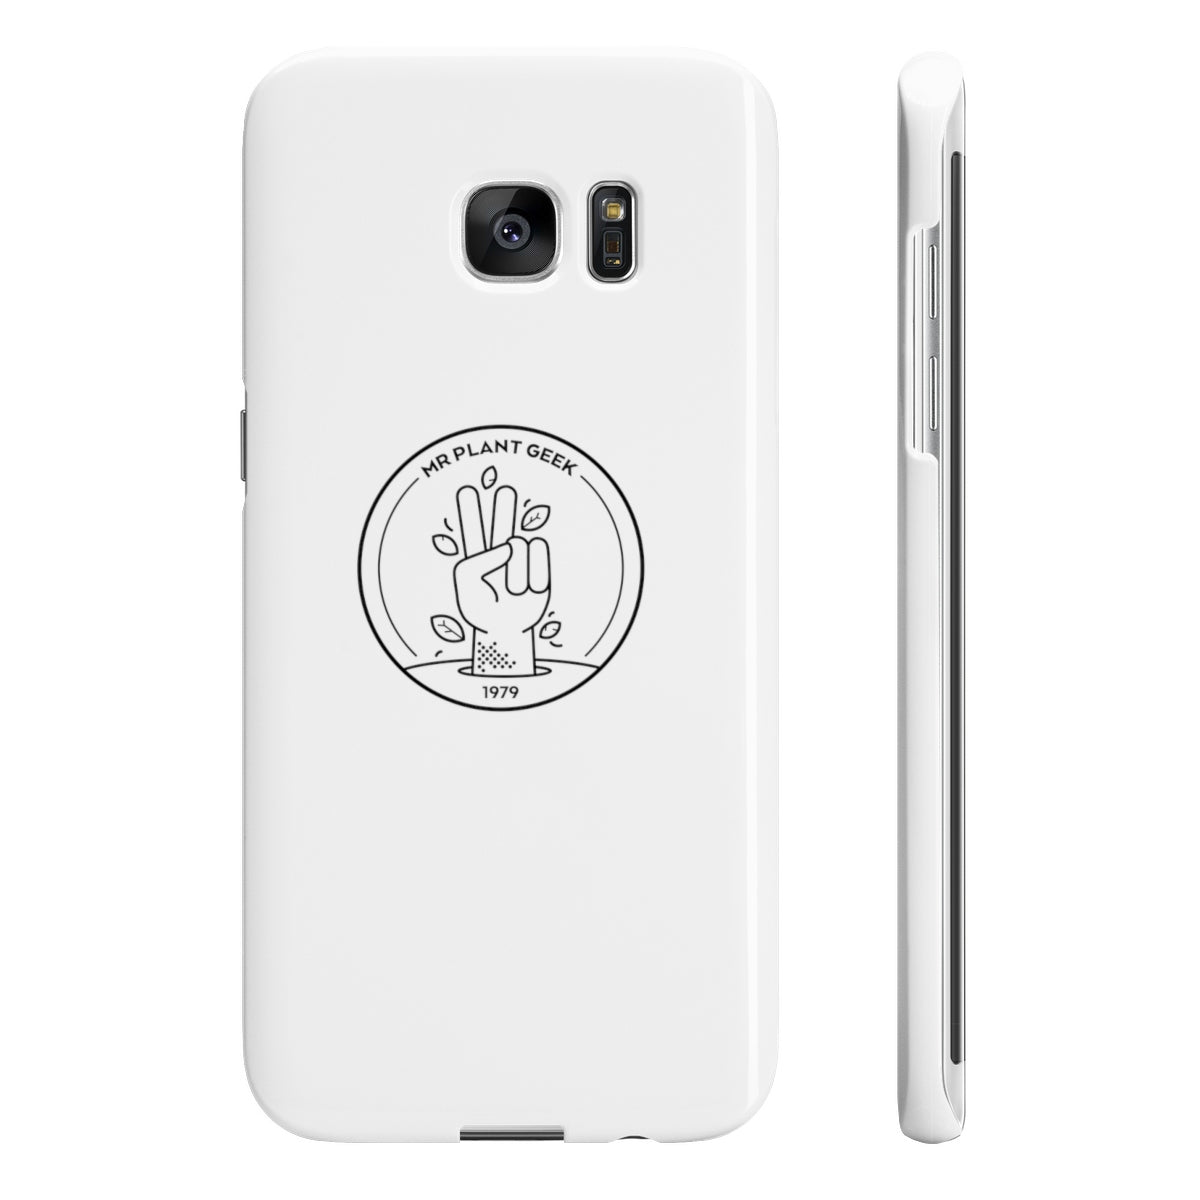 Mr Plant Geek Slim Phone Case